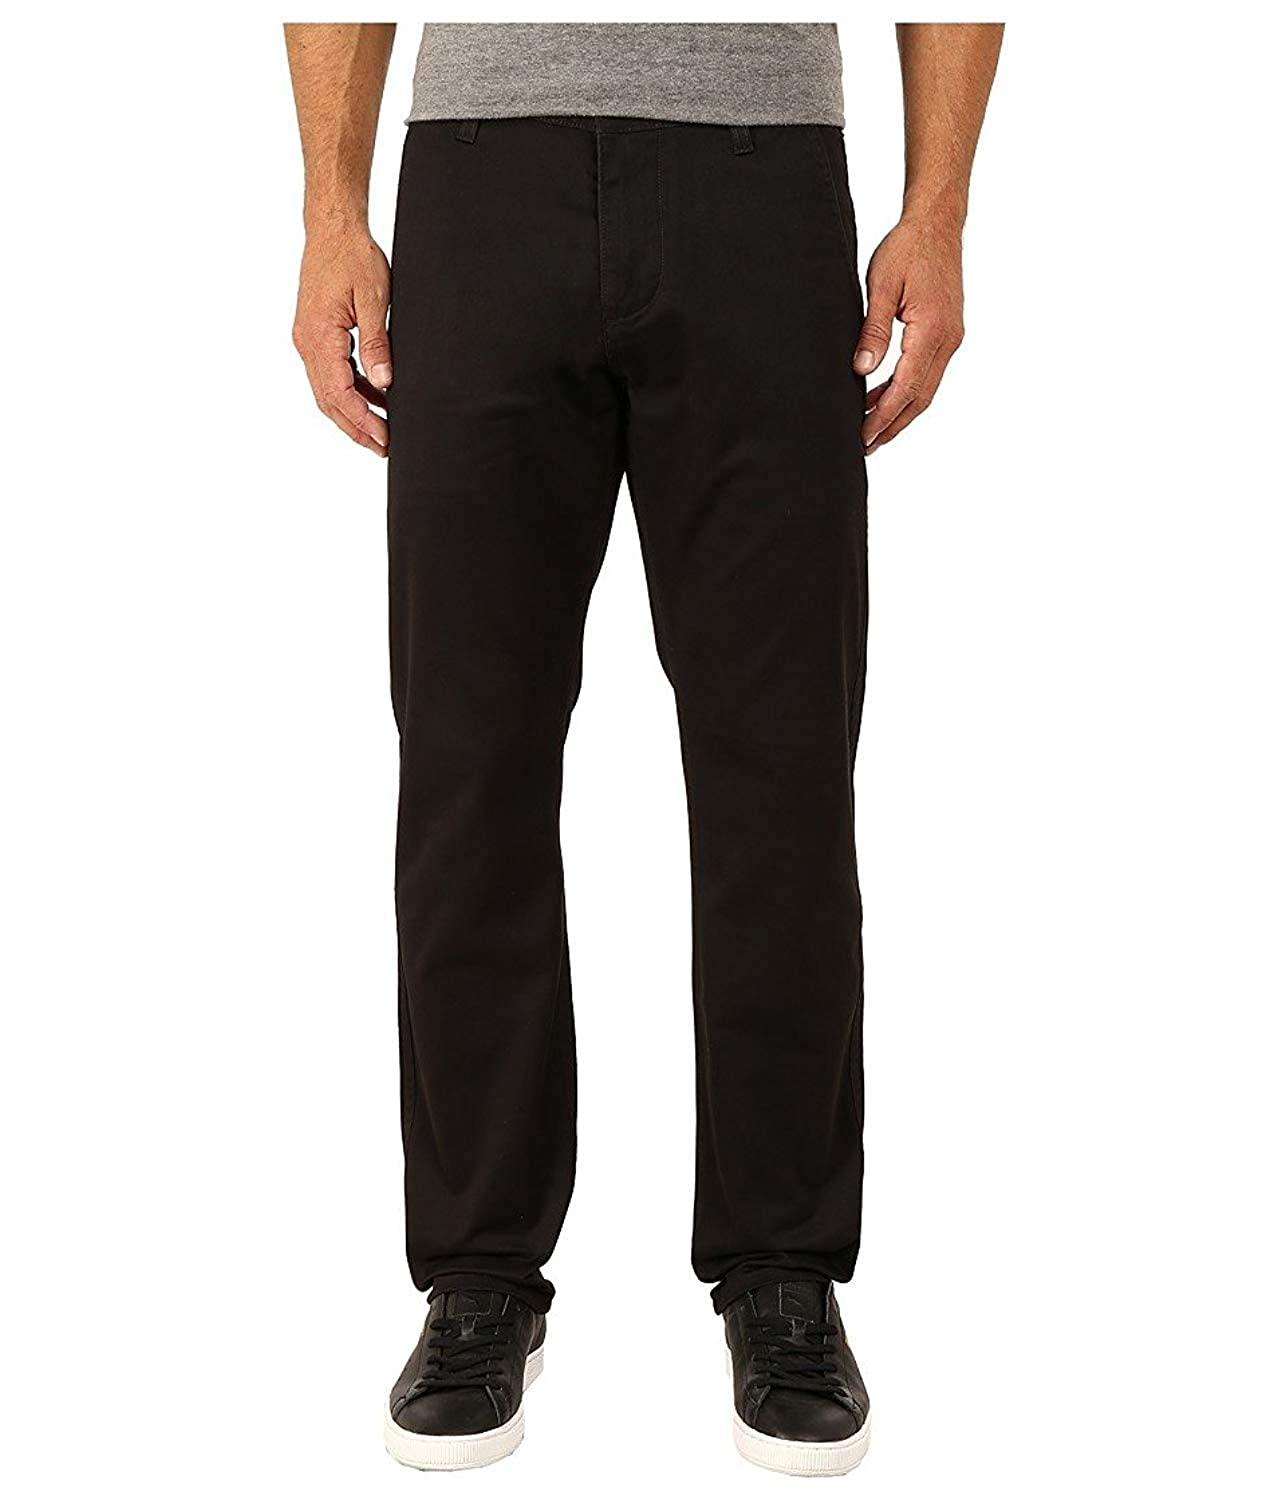 Dockers Men's Alpha Khaki Stretch Slim Tapered Fit Flat Front Pant Dockers Men' s Bottoms 44715